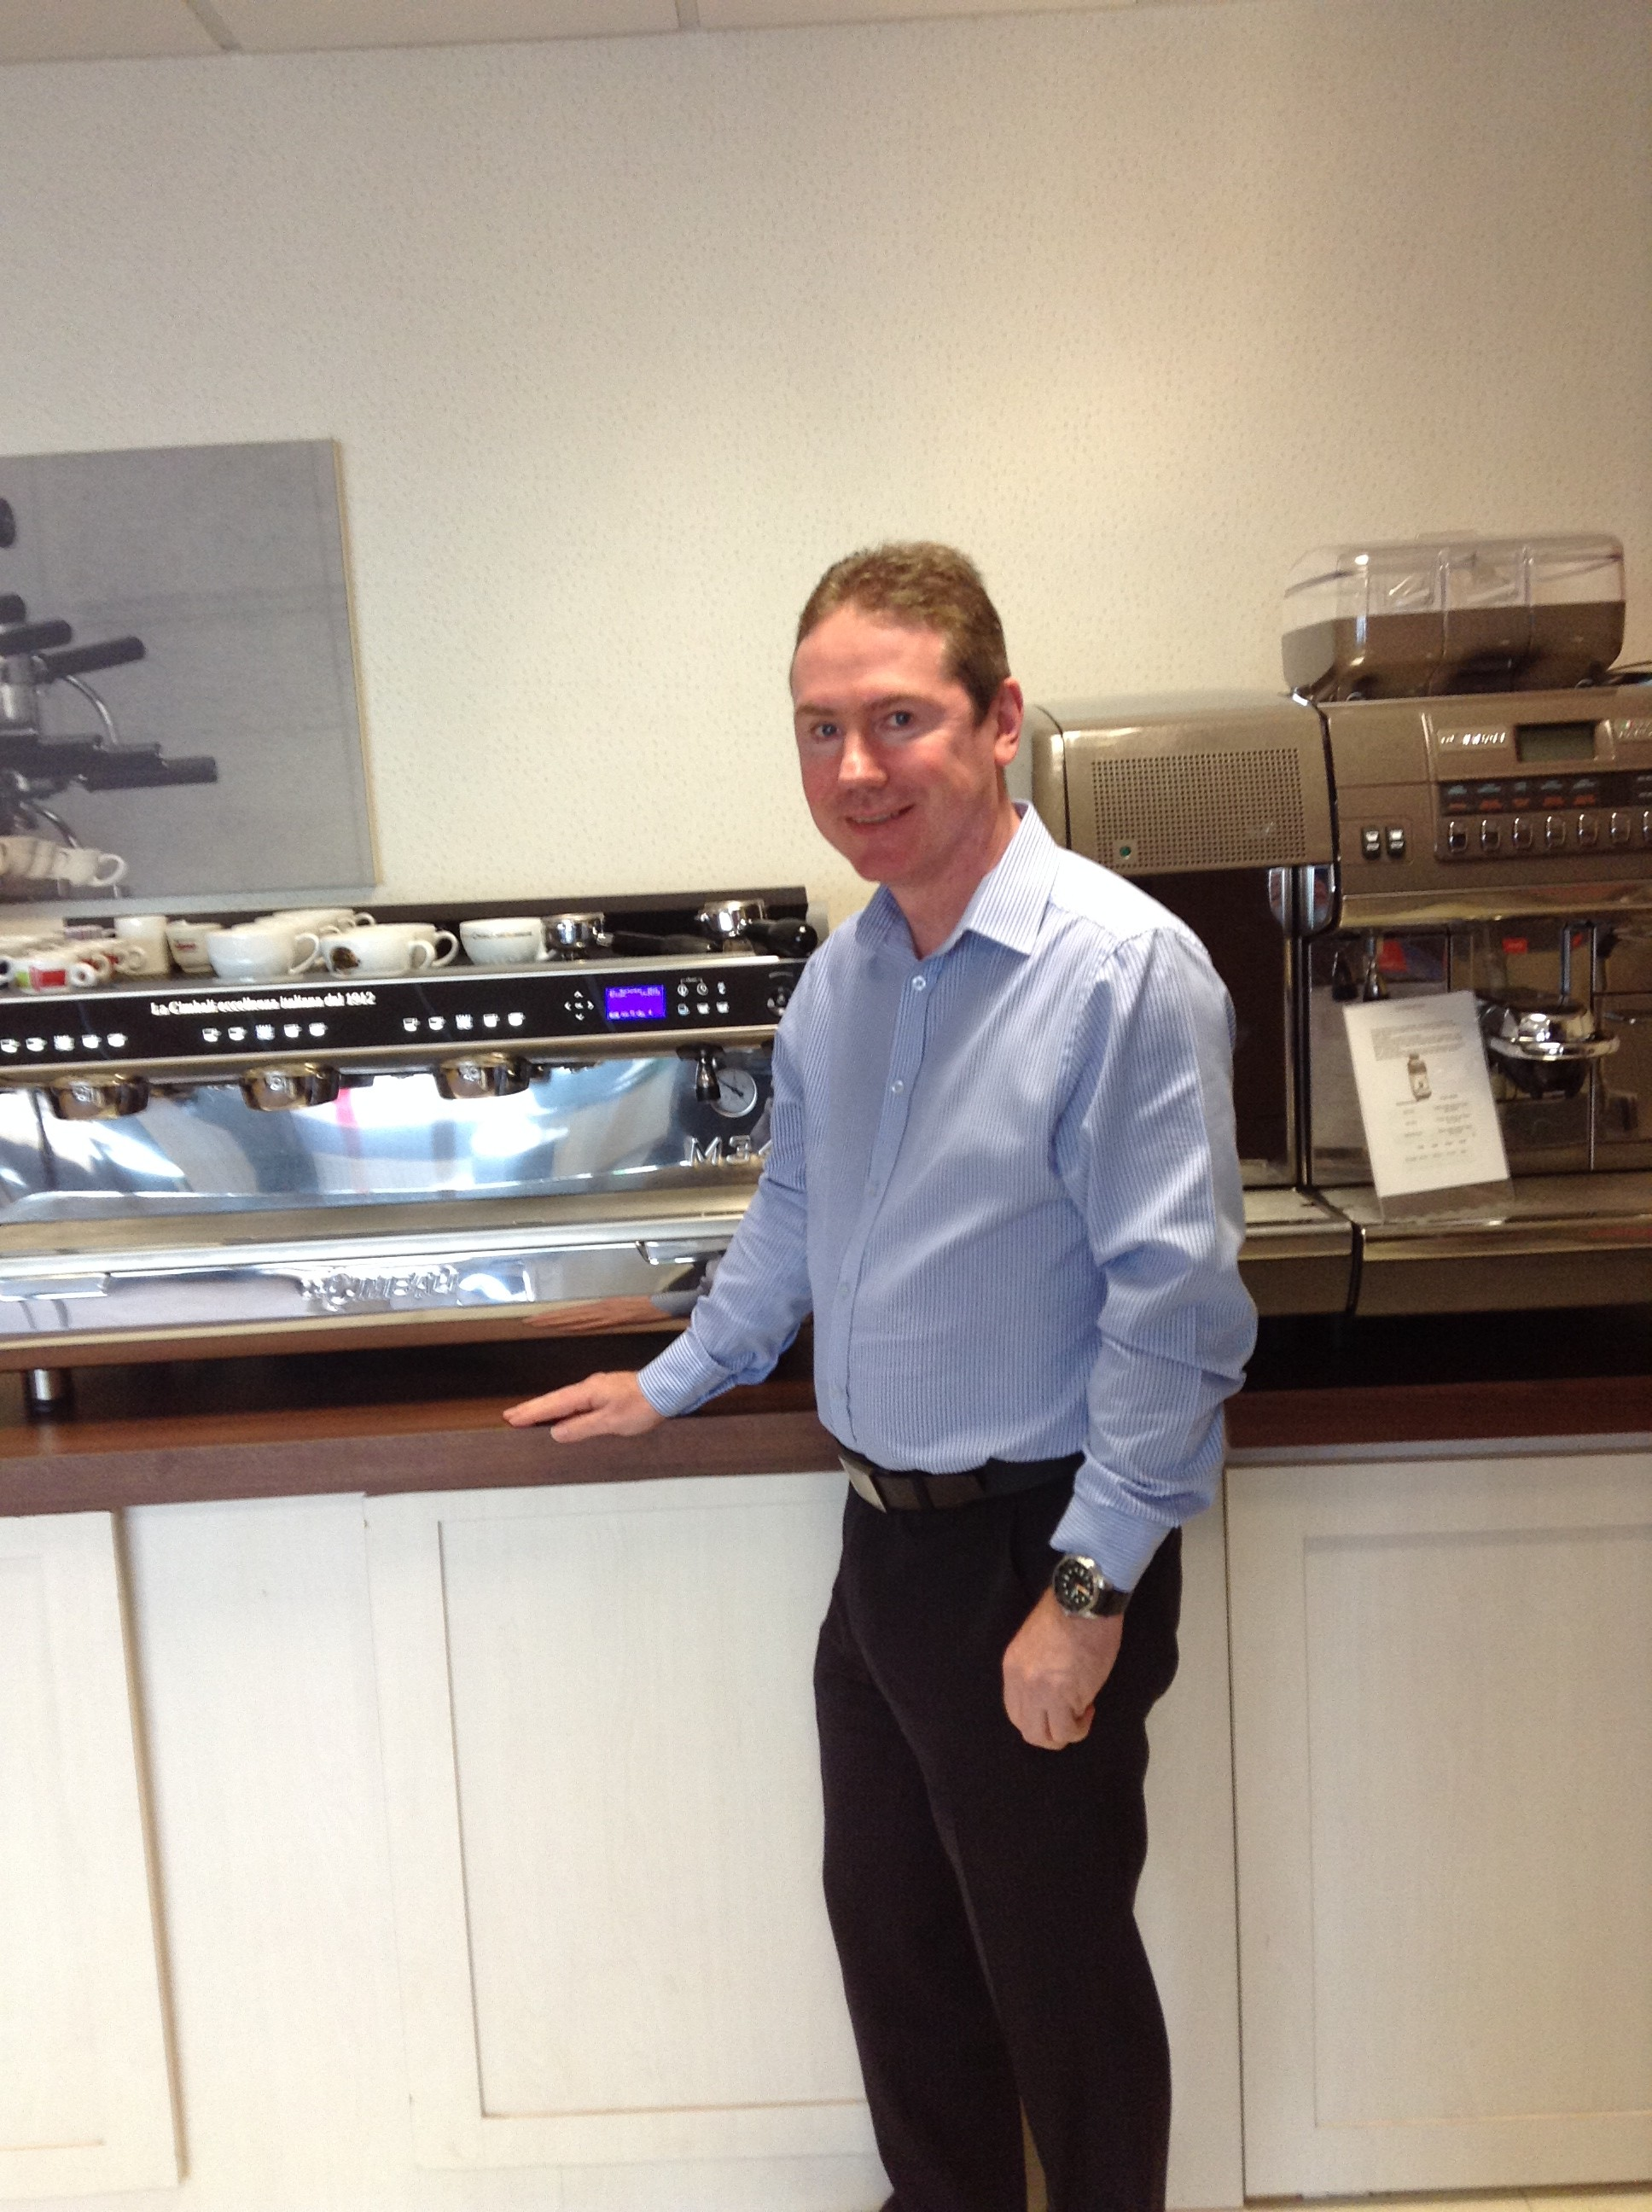 Keith Stanger with Cimbali Commercial coffee machines M34 and S39